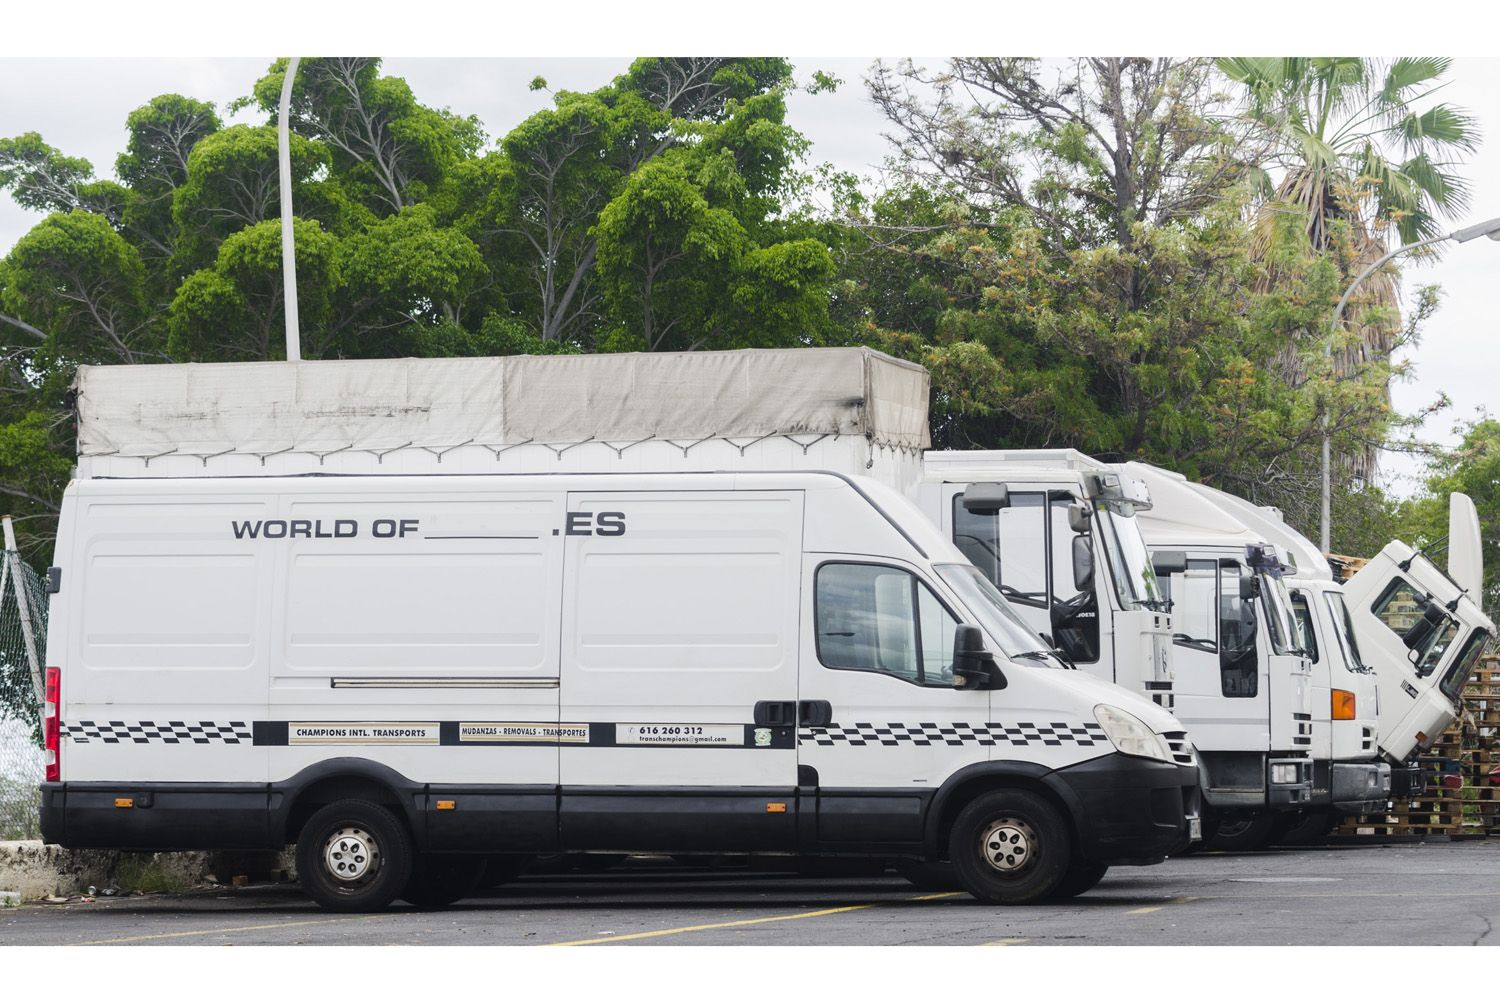 Flota de transporte de Champions International Transports & Moving